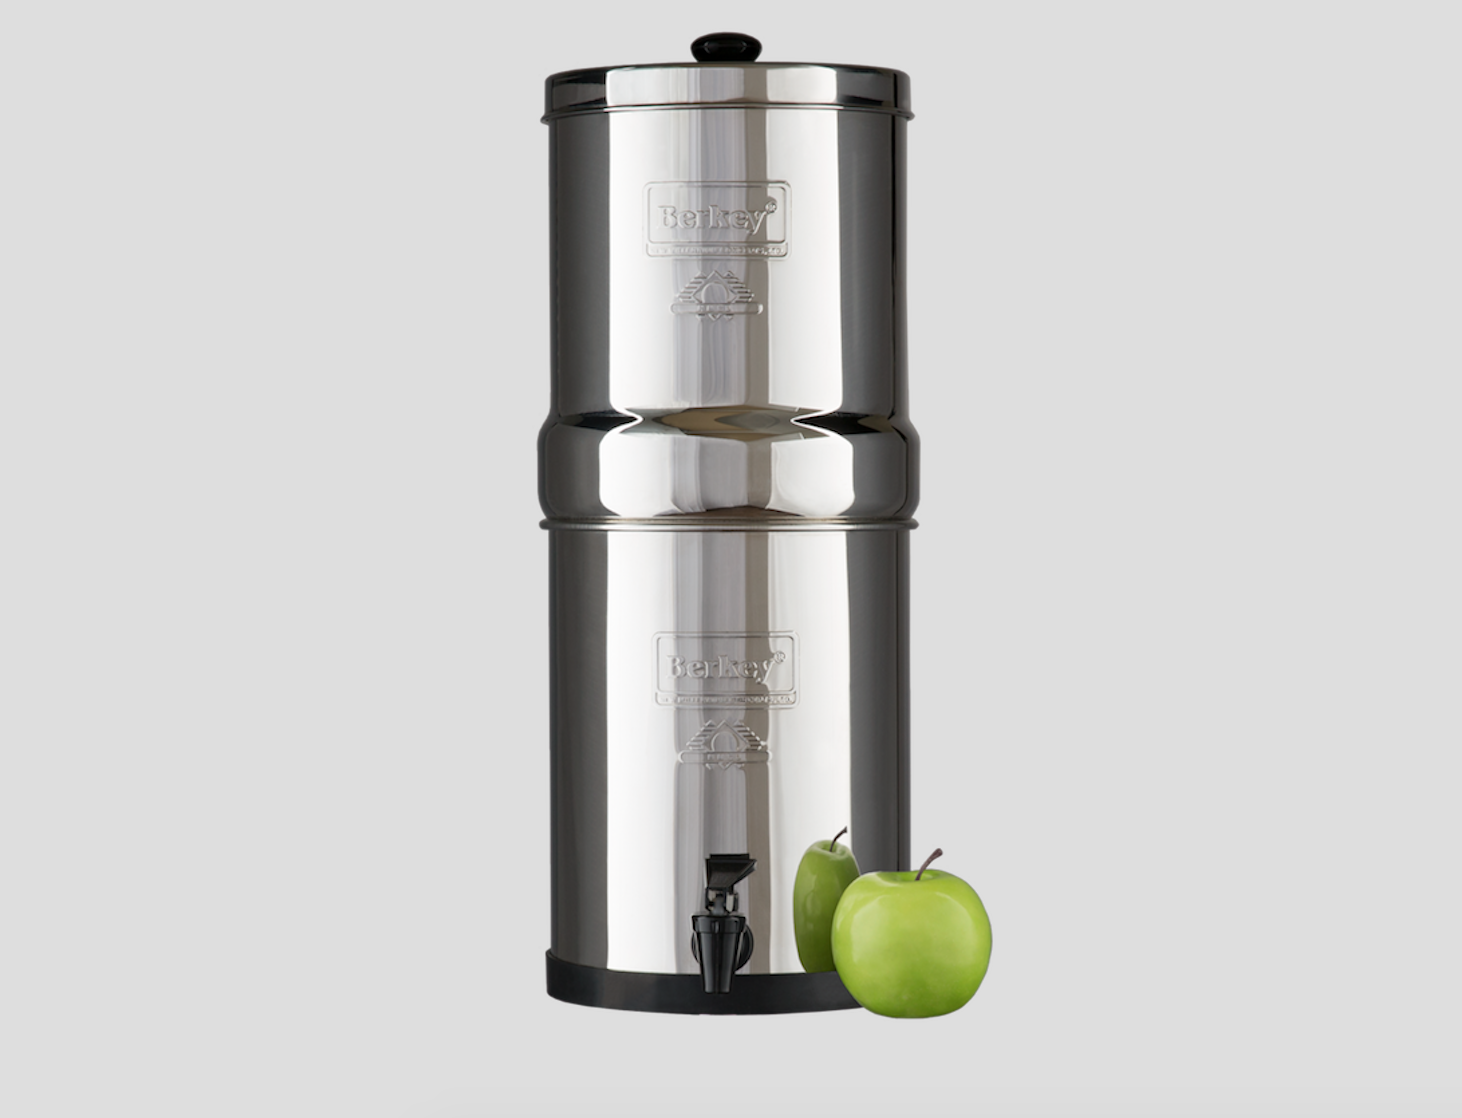 Travel Berkey™ Water Filter System - It's not fun having bad tap water in your house that you can't drink. We just moved into a house and the tap water is terrible. But that doesn't mean we can't use it. We found this Travel Berkey Water Filter System, which filters out all of the bad stuff in your water, and helps it taste great too. It holds 1.5 gallons of filtered water. This Travel System is perfect for a single person, couple, or for any travelers out there wanting to purify their water while traveling. No more having to worry about how safe your water is to drink. Berkey filters out tons of bacterias, Pesticides, Heavy Metals, Micro-Organisms,Inorganic Minerals, and so much more. There is a HUGE list on their site about all this travel system can filter, and it's worth a look. This system can sit right on your counter and has an easy pour spout so you can get your filtered water whenever you need it. They also have several other sizes depending on your family or household size. It comes with 2 filters, that will give you over 6,000 gallons of filtered water. Ready for clean water for your family to drink? Grab this Berkey Water Filter System!